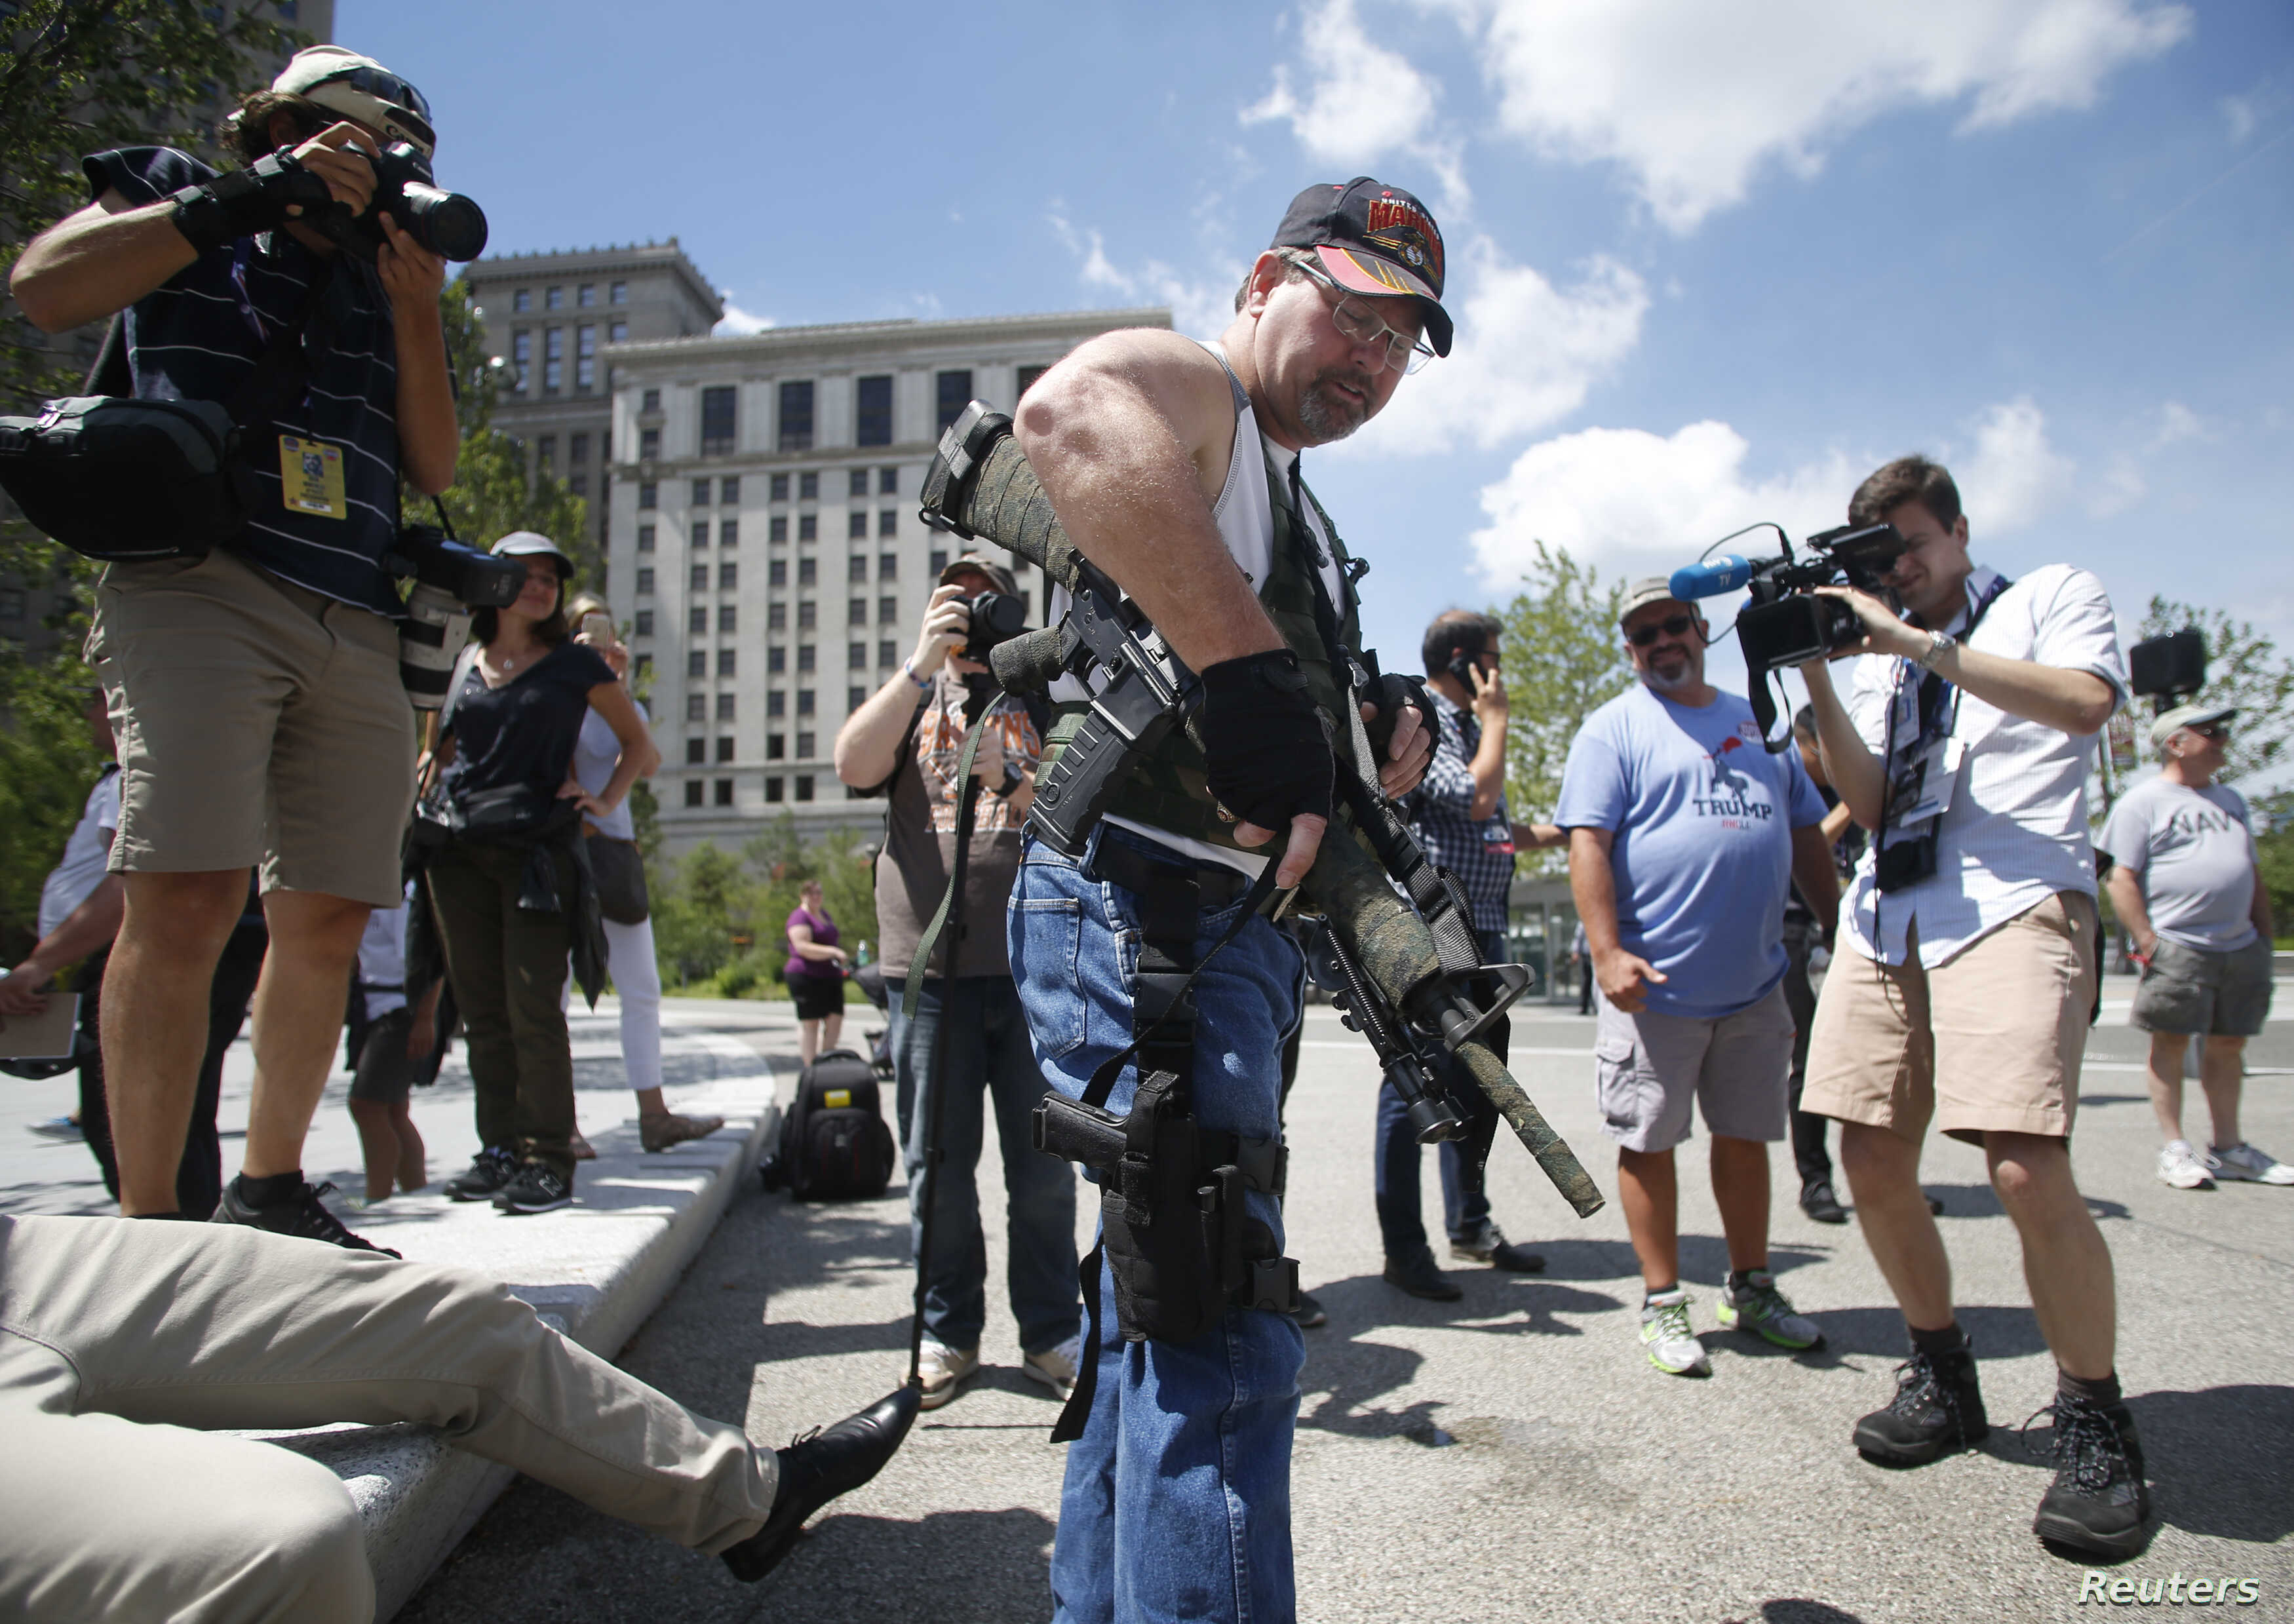 Steve Thacker carrying a rifle and a handgun is surrounded by news media in a public square in Cleveland, Ohio, July 17, 2016.